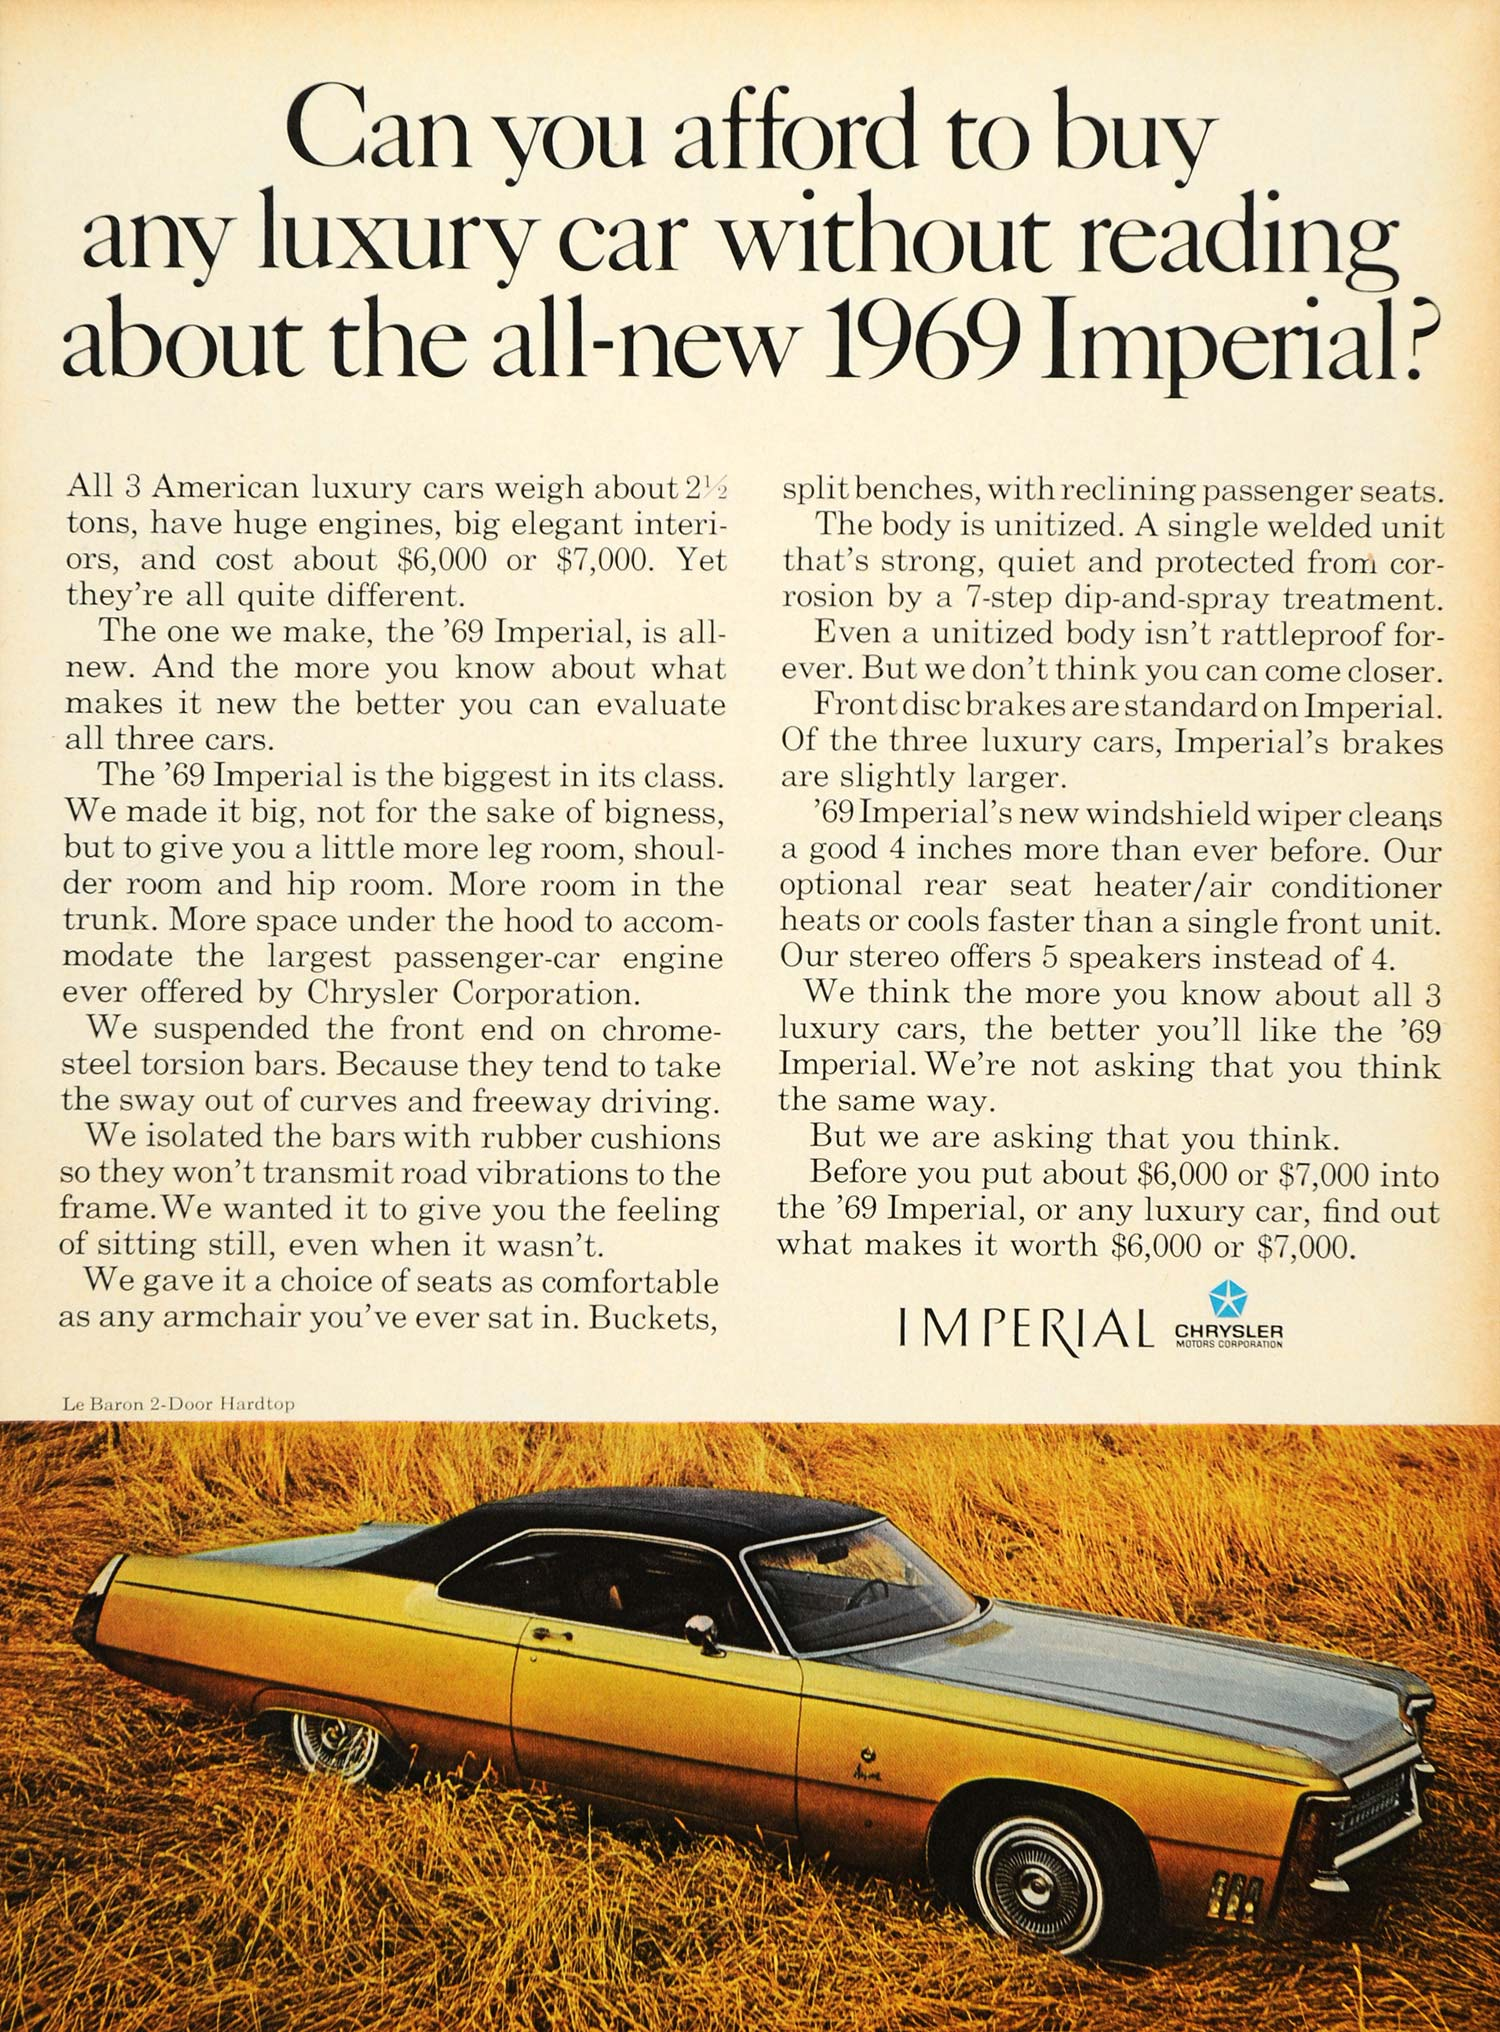 1968 Ad Vintage Luxury '69 Imperial Chrysler Pricing - ORIGINAL ADVERTISING TM3